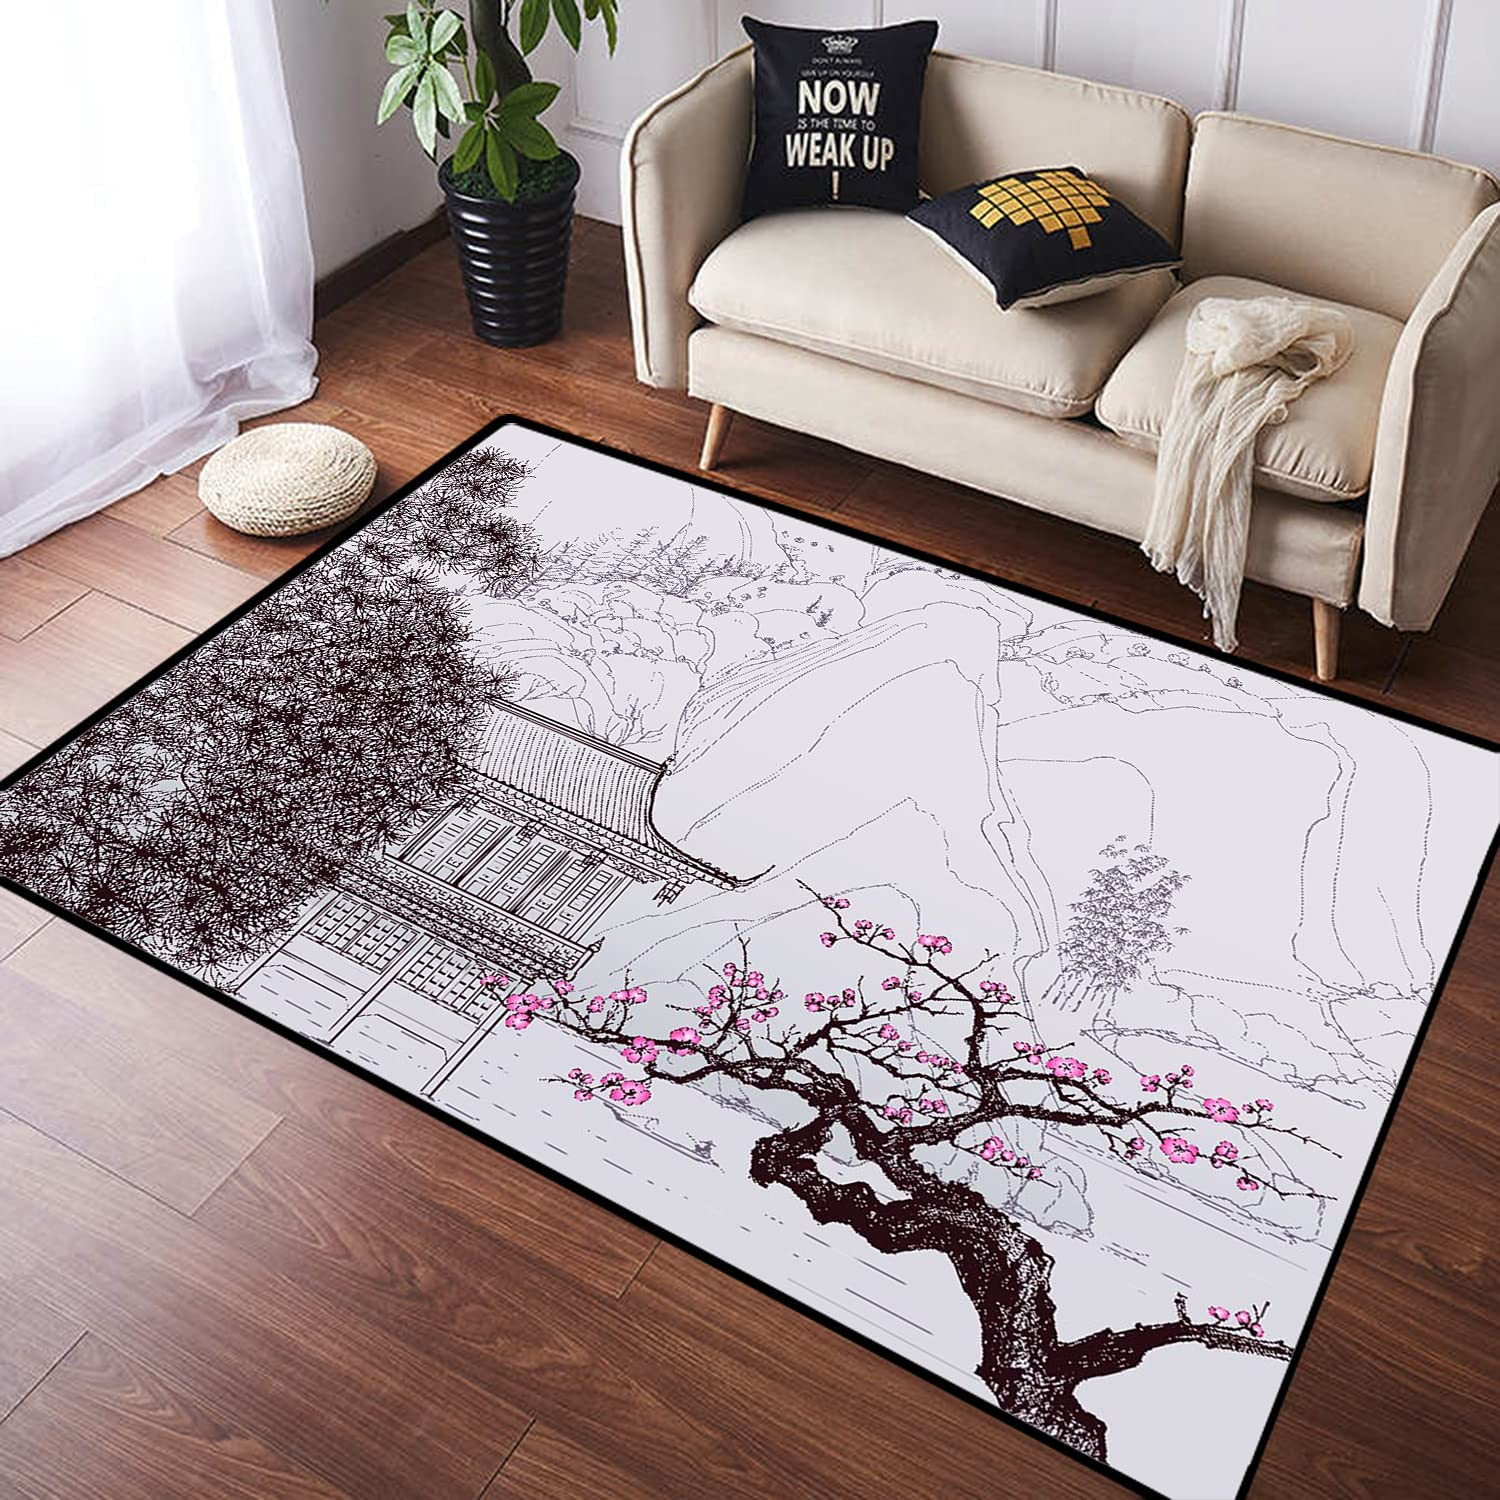 ZOMOY Long Floor Mat a Chinese Landscape The Old in Style Max 68% OFF Sales of SALE items from new works of Chi